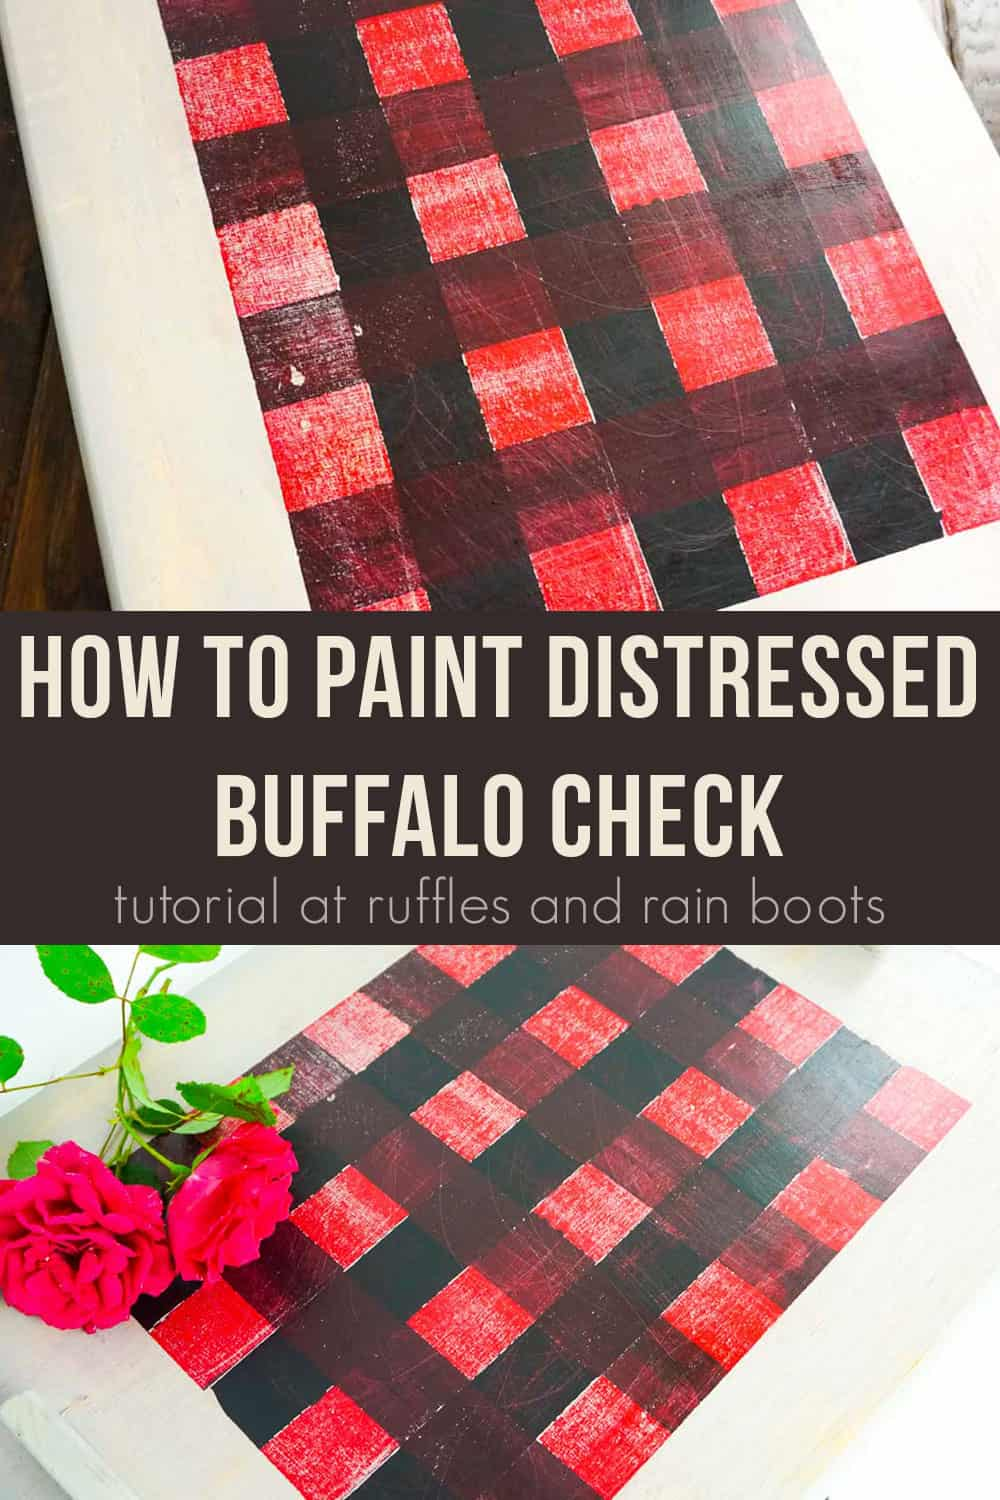 photo collage of How to Paint Buffalo Check Print on Wood for a Christmas tray upcycle with text which reads how to pain distressed buffalo check